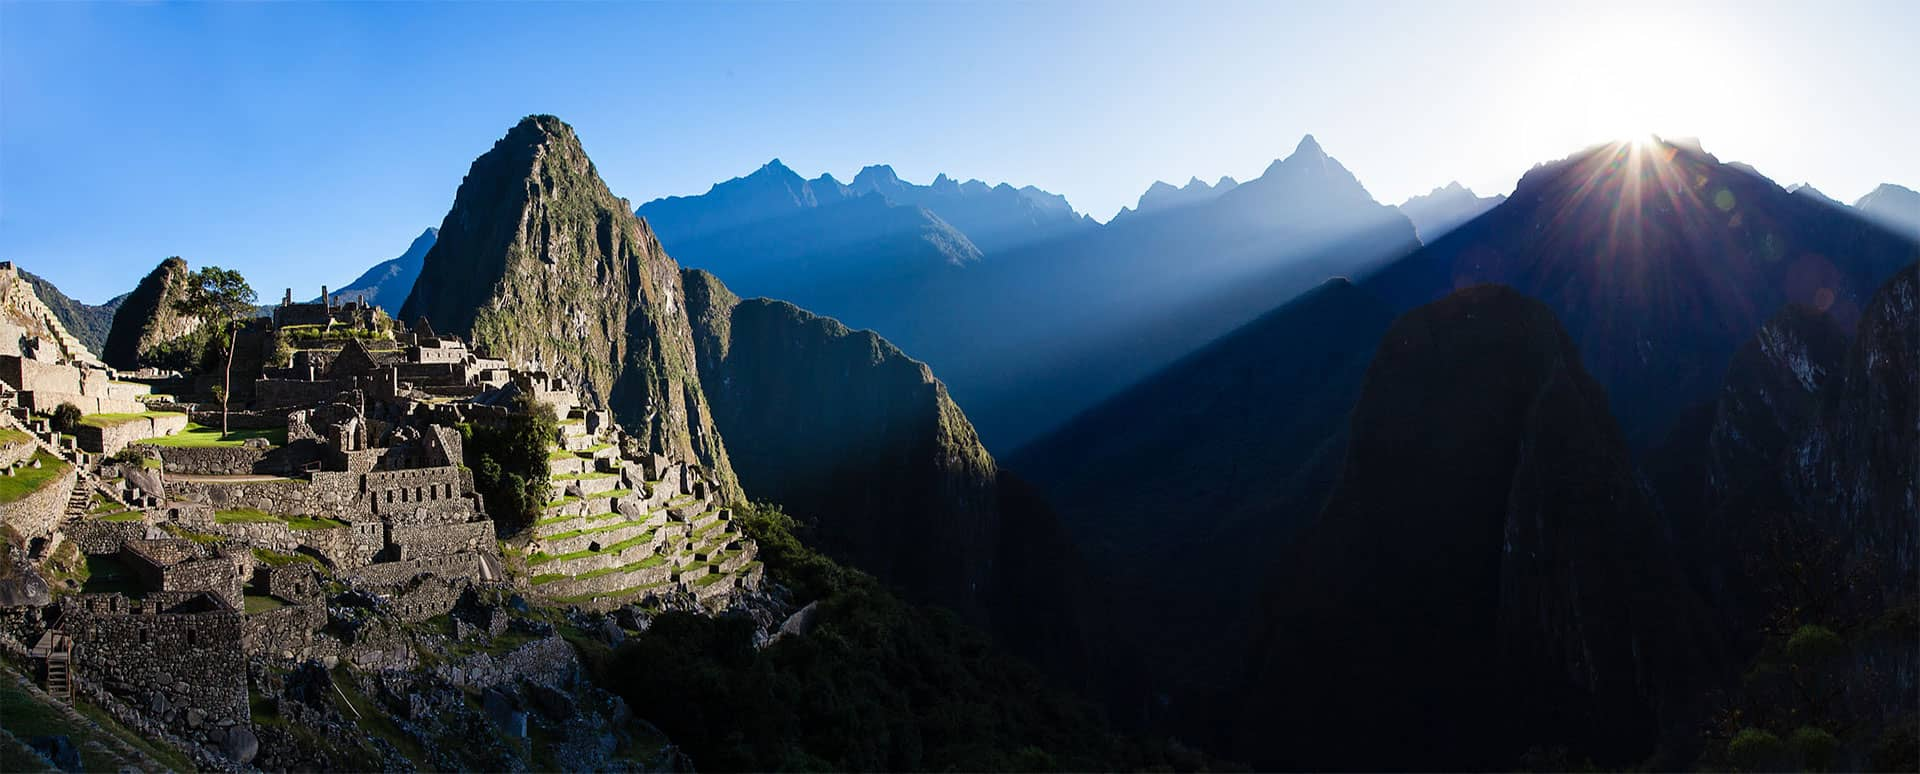 1 day Inca trail To Machu Picchu - Hotel Veronica View